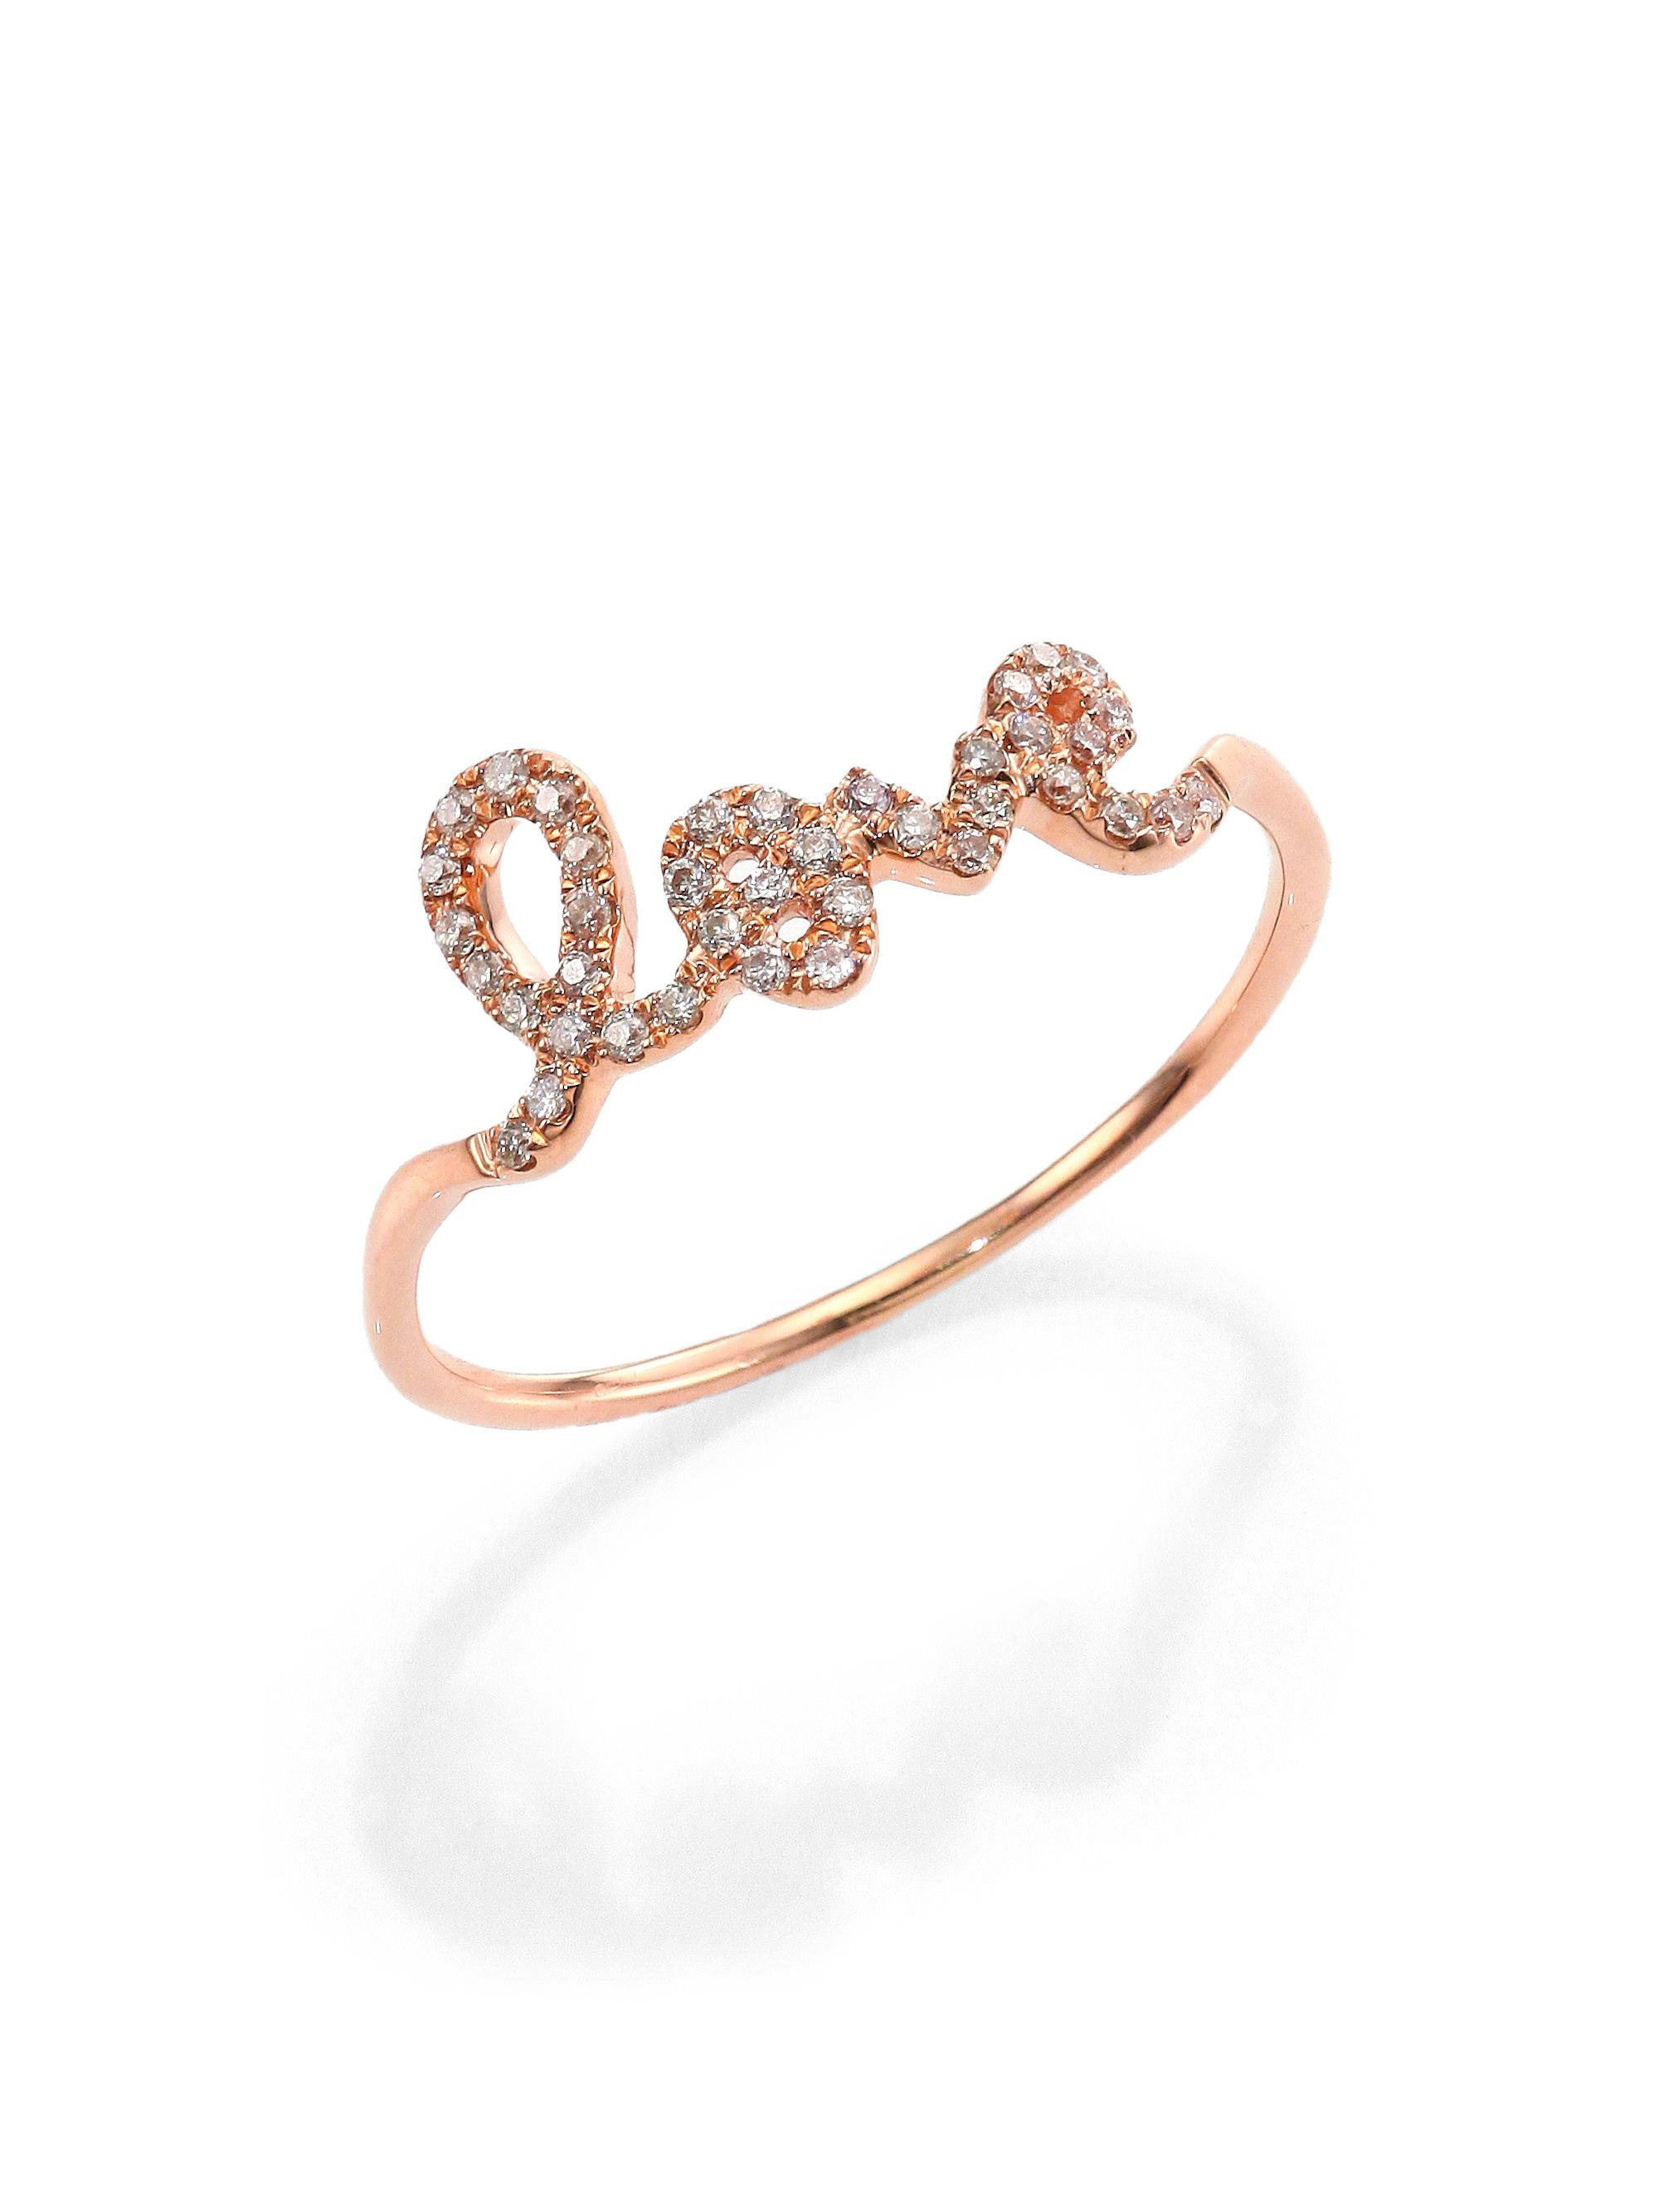 Sydney Evan 14k Gold Small Double Heart Ring rSEXMNT